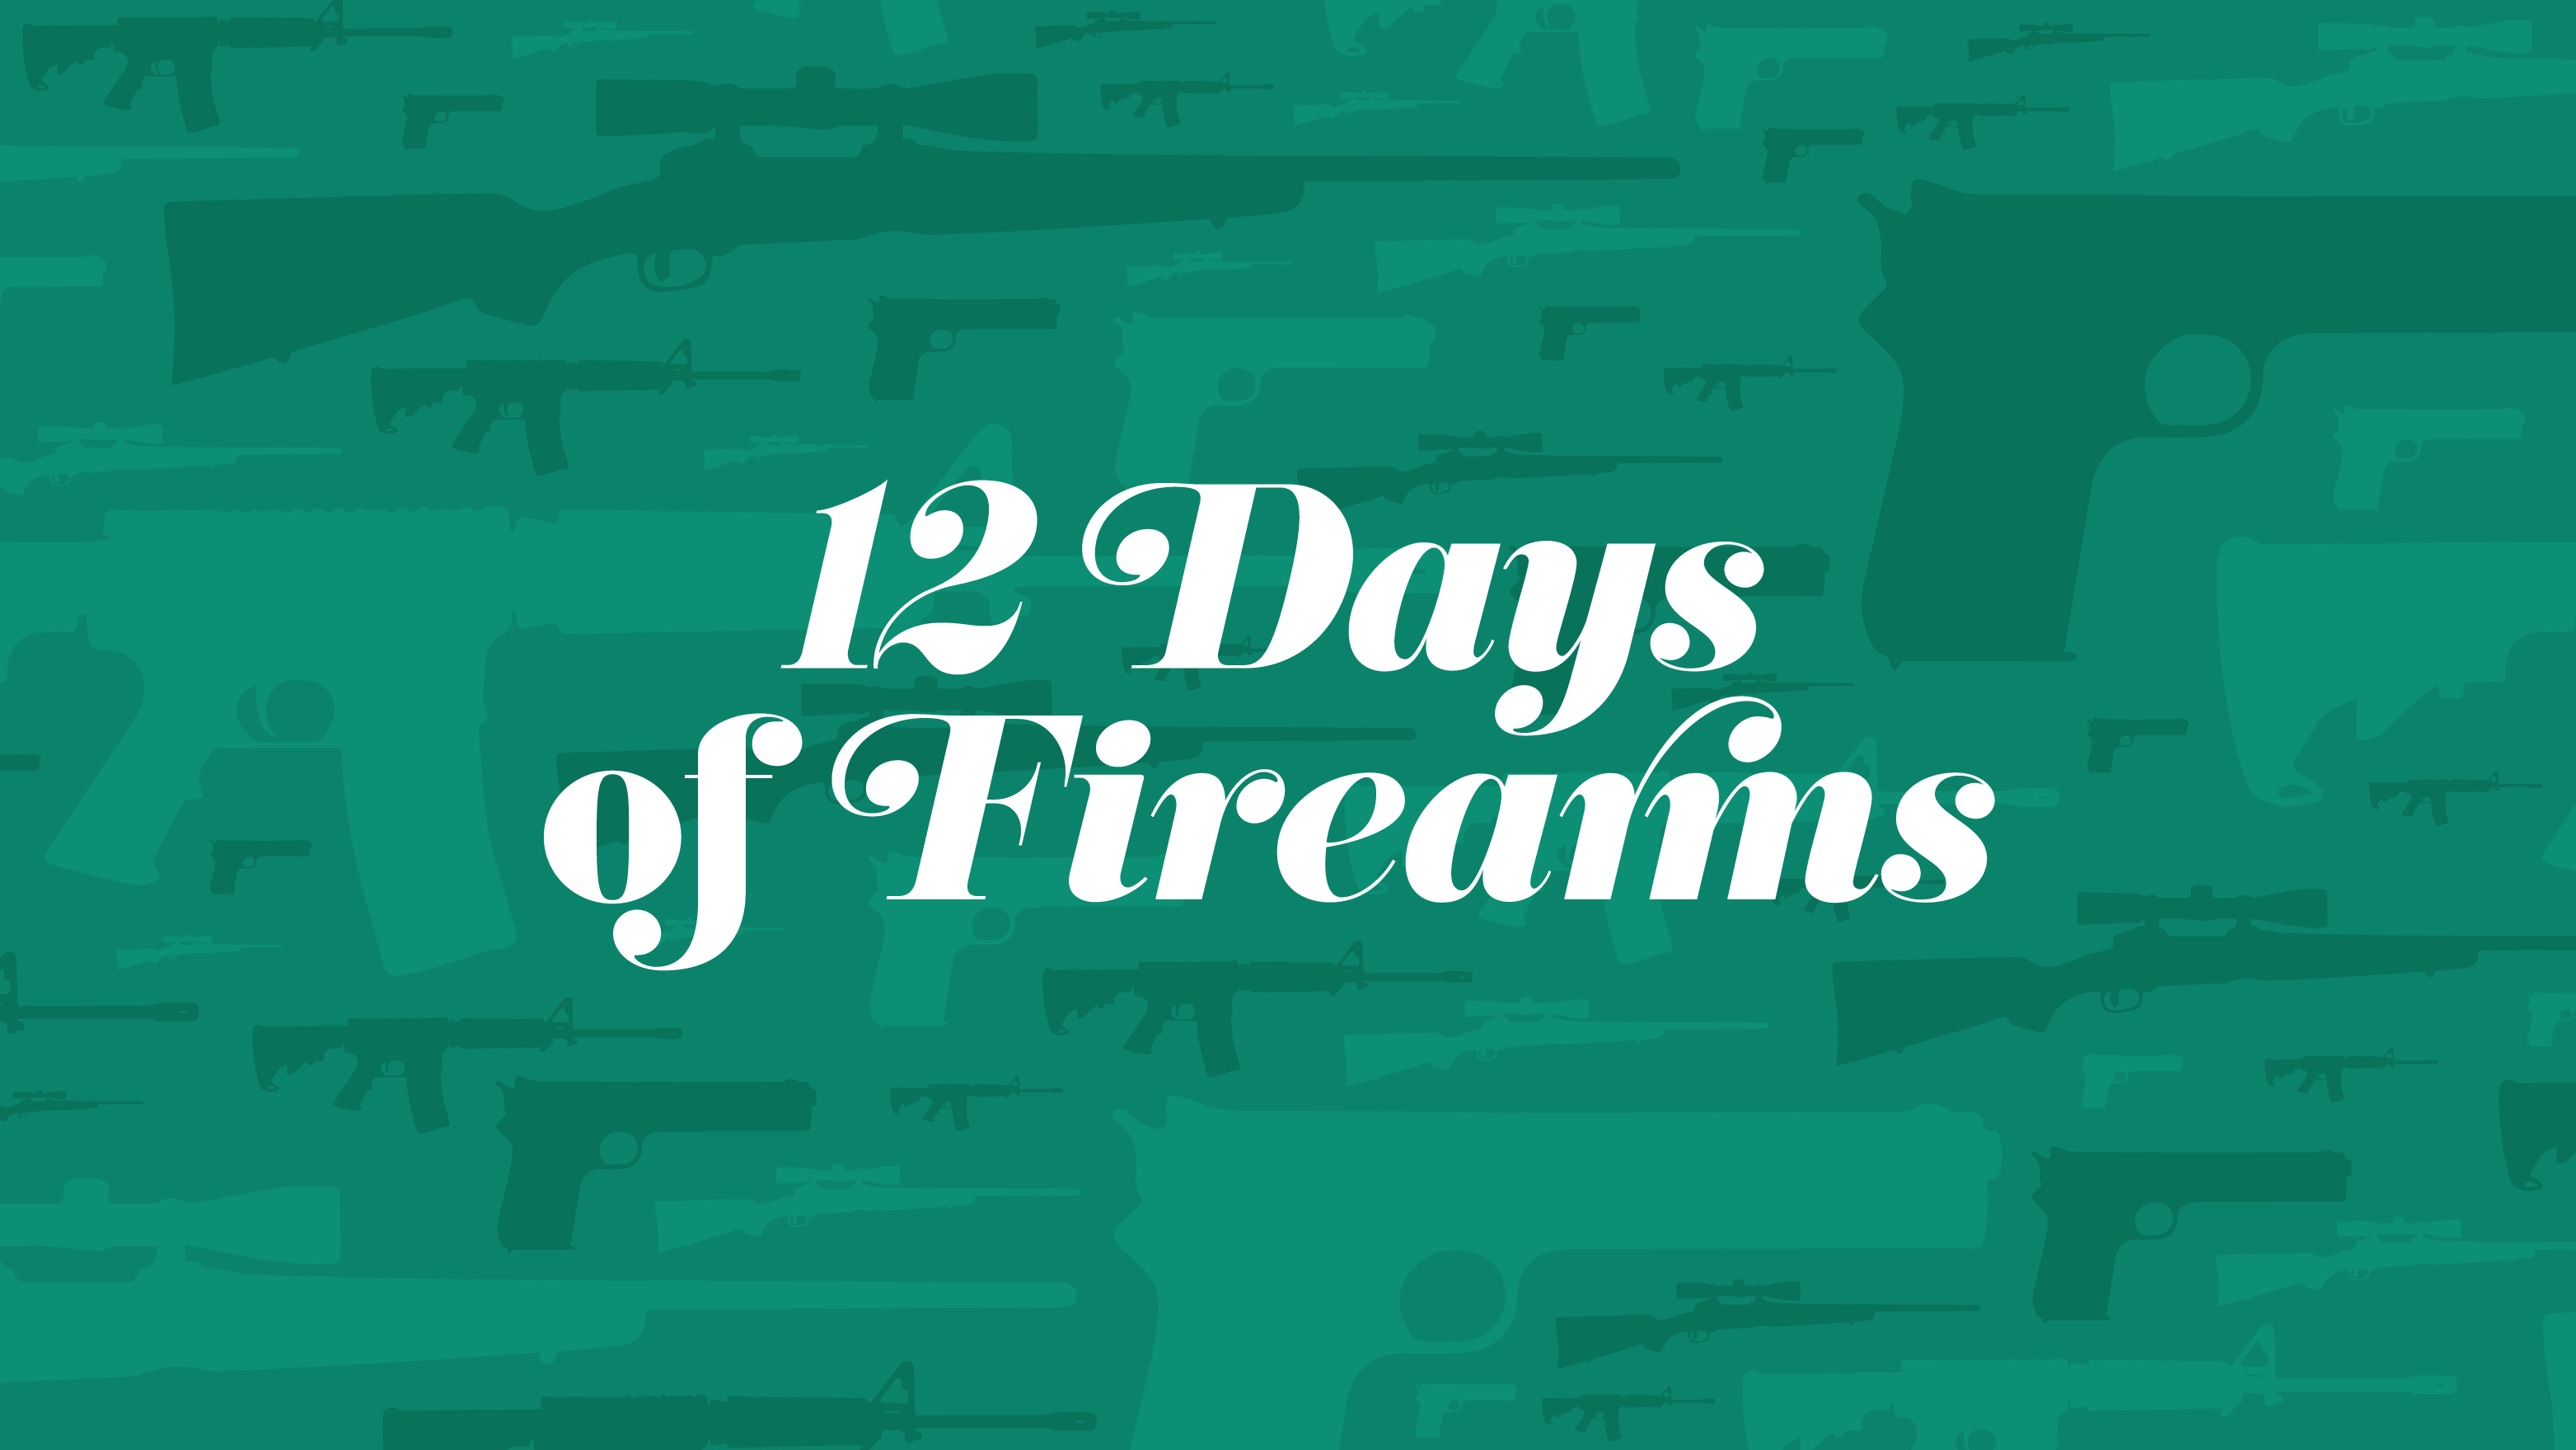 Day 1: Clint Eastwood's M1 Garand from Gran Torino